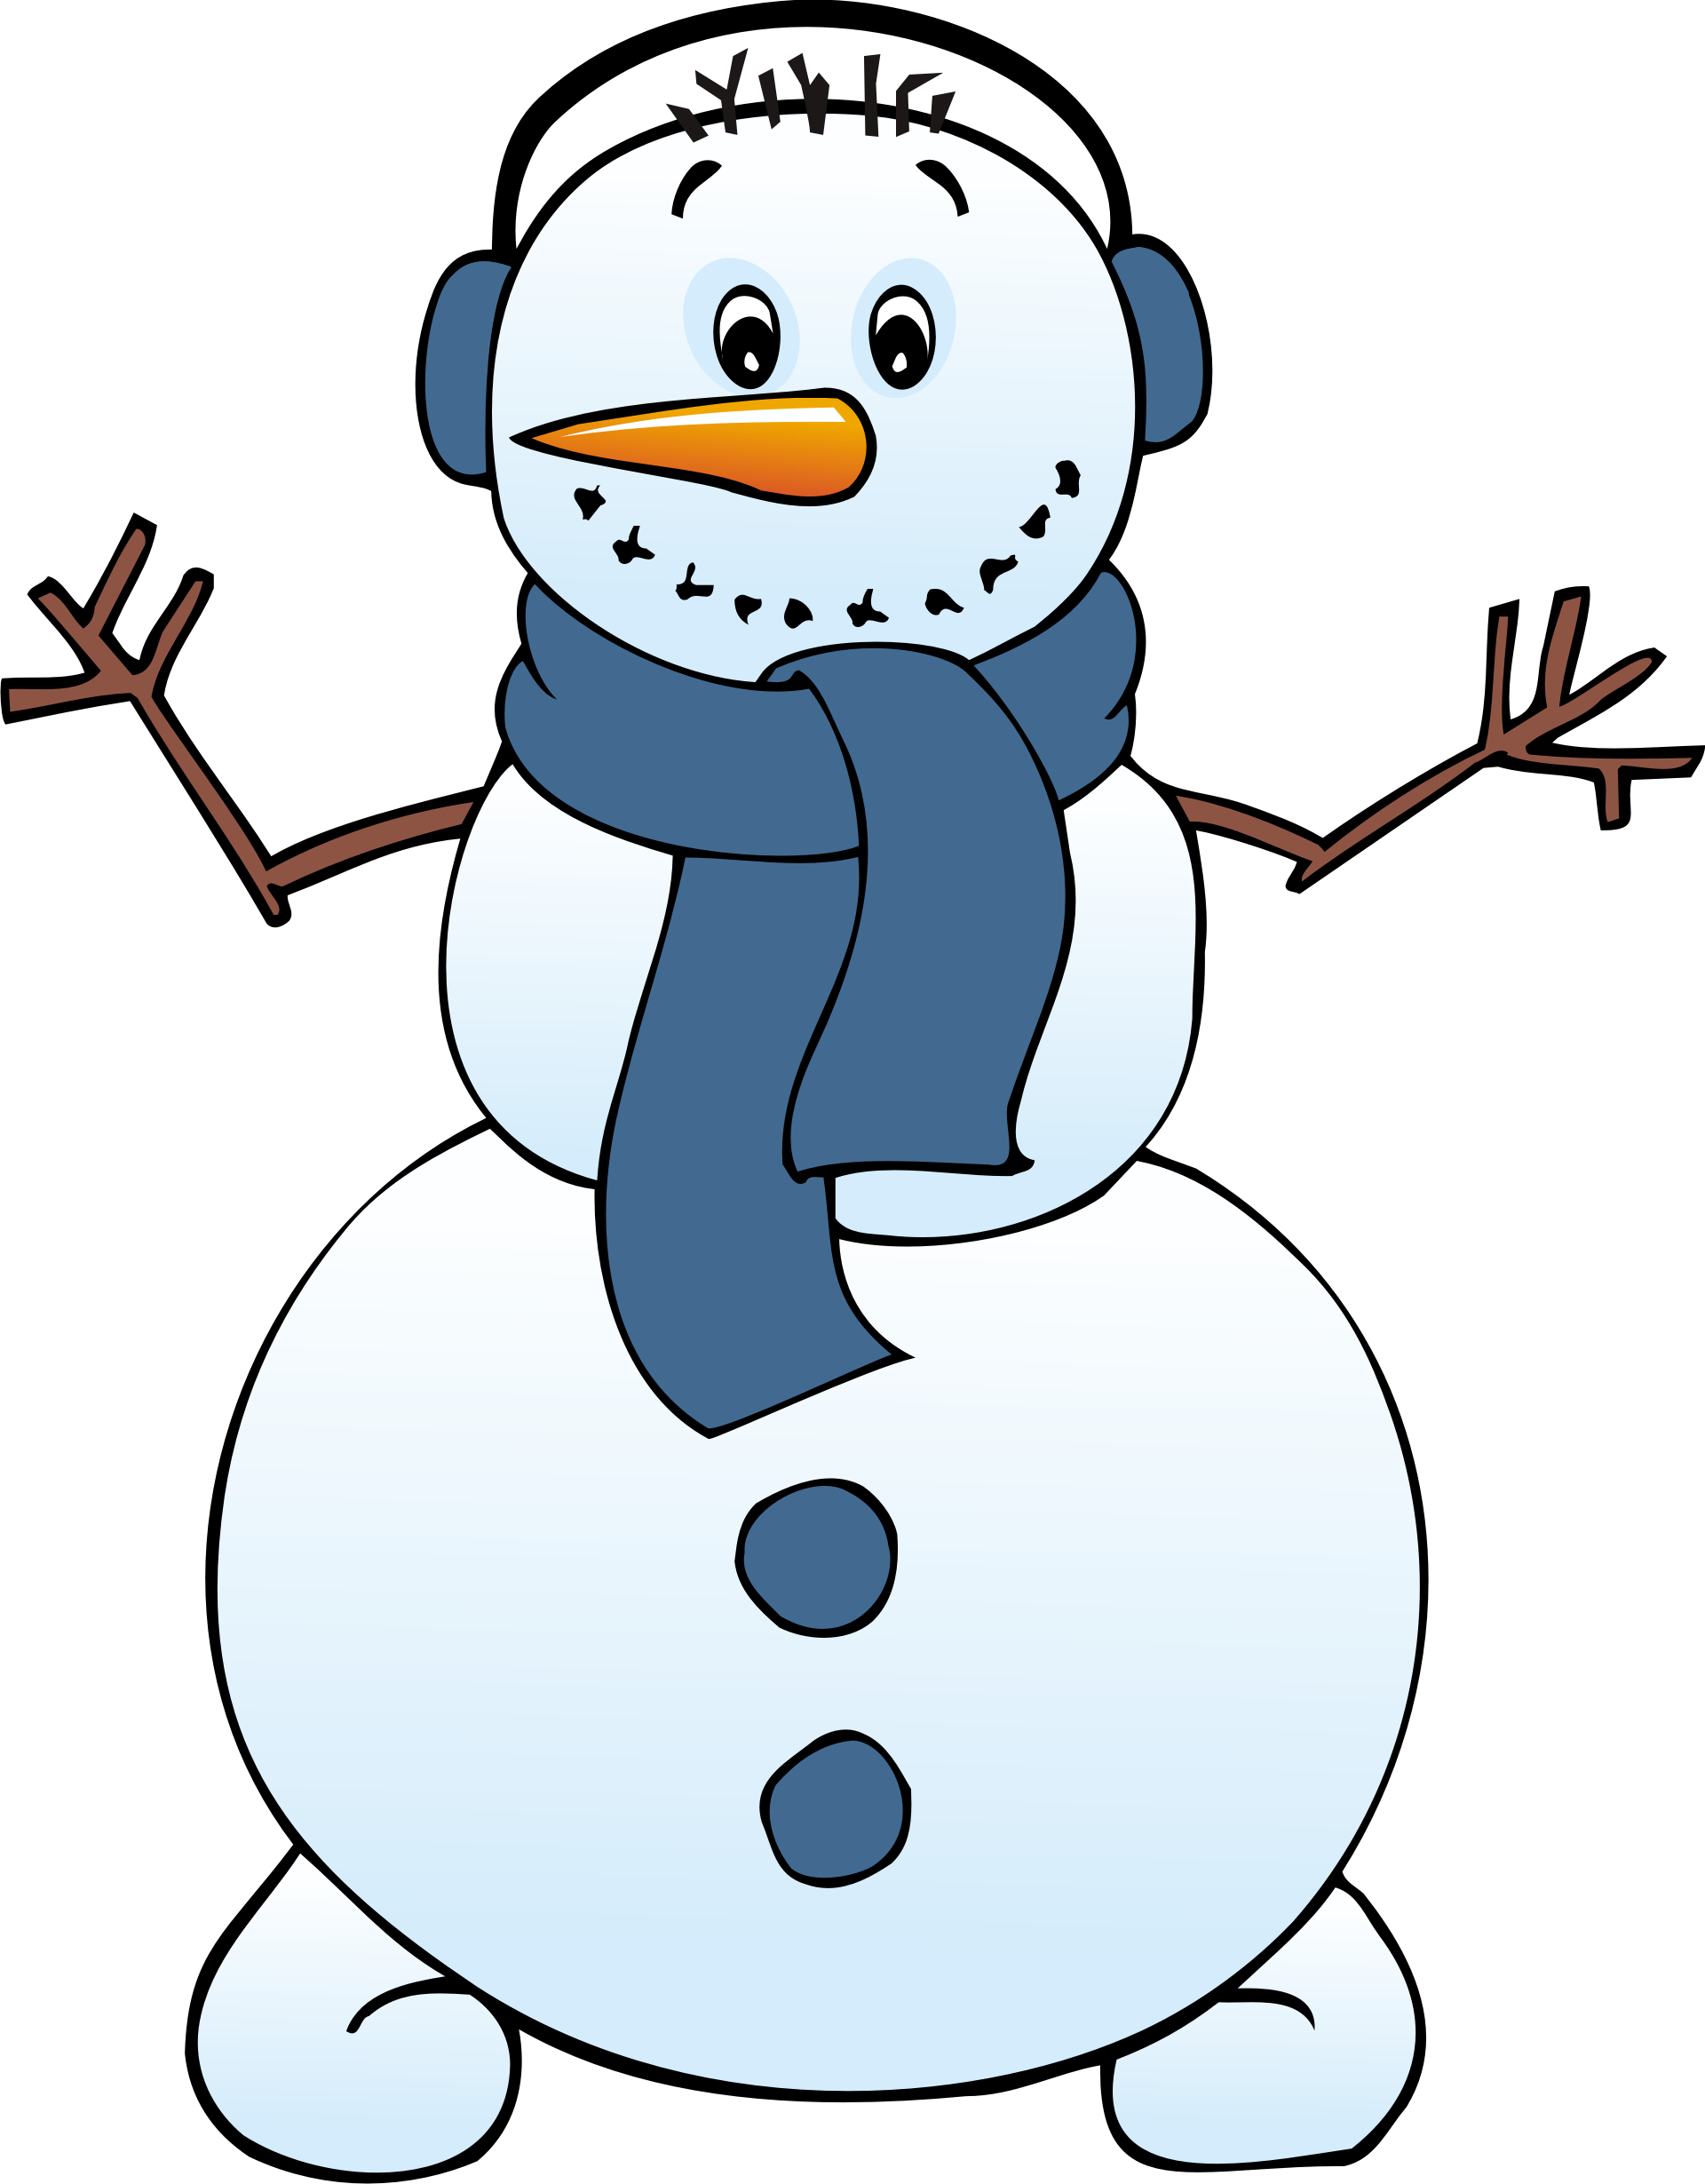 Free clipart winter image black and white library Winter snowman clip art free clipart images 4 - Cliparting.com image black and white library